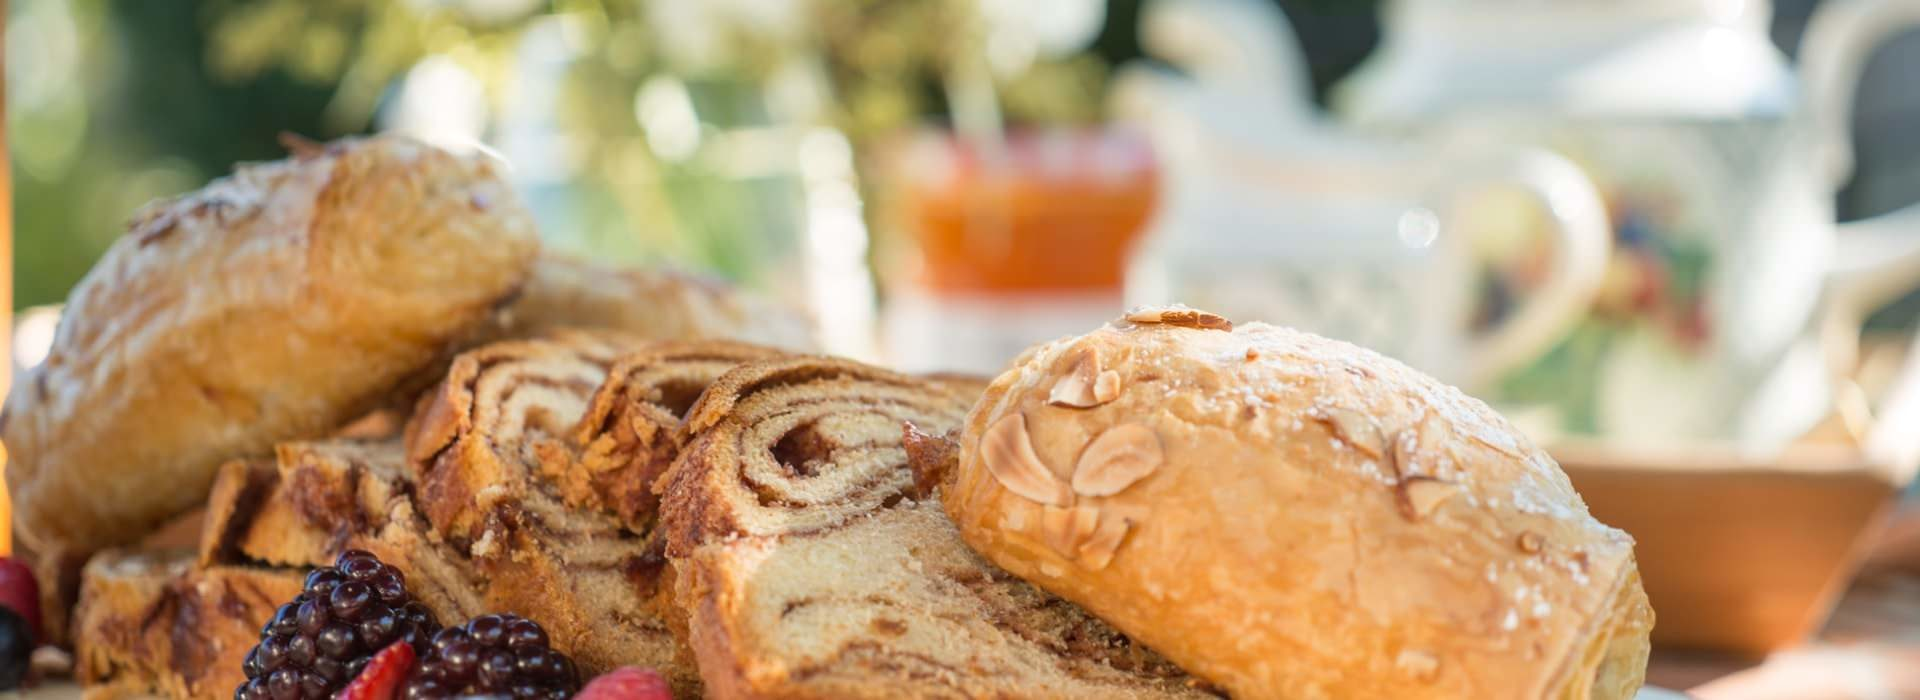 Close up view of a variety of pastries and bread